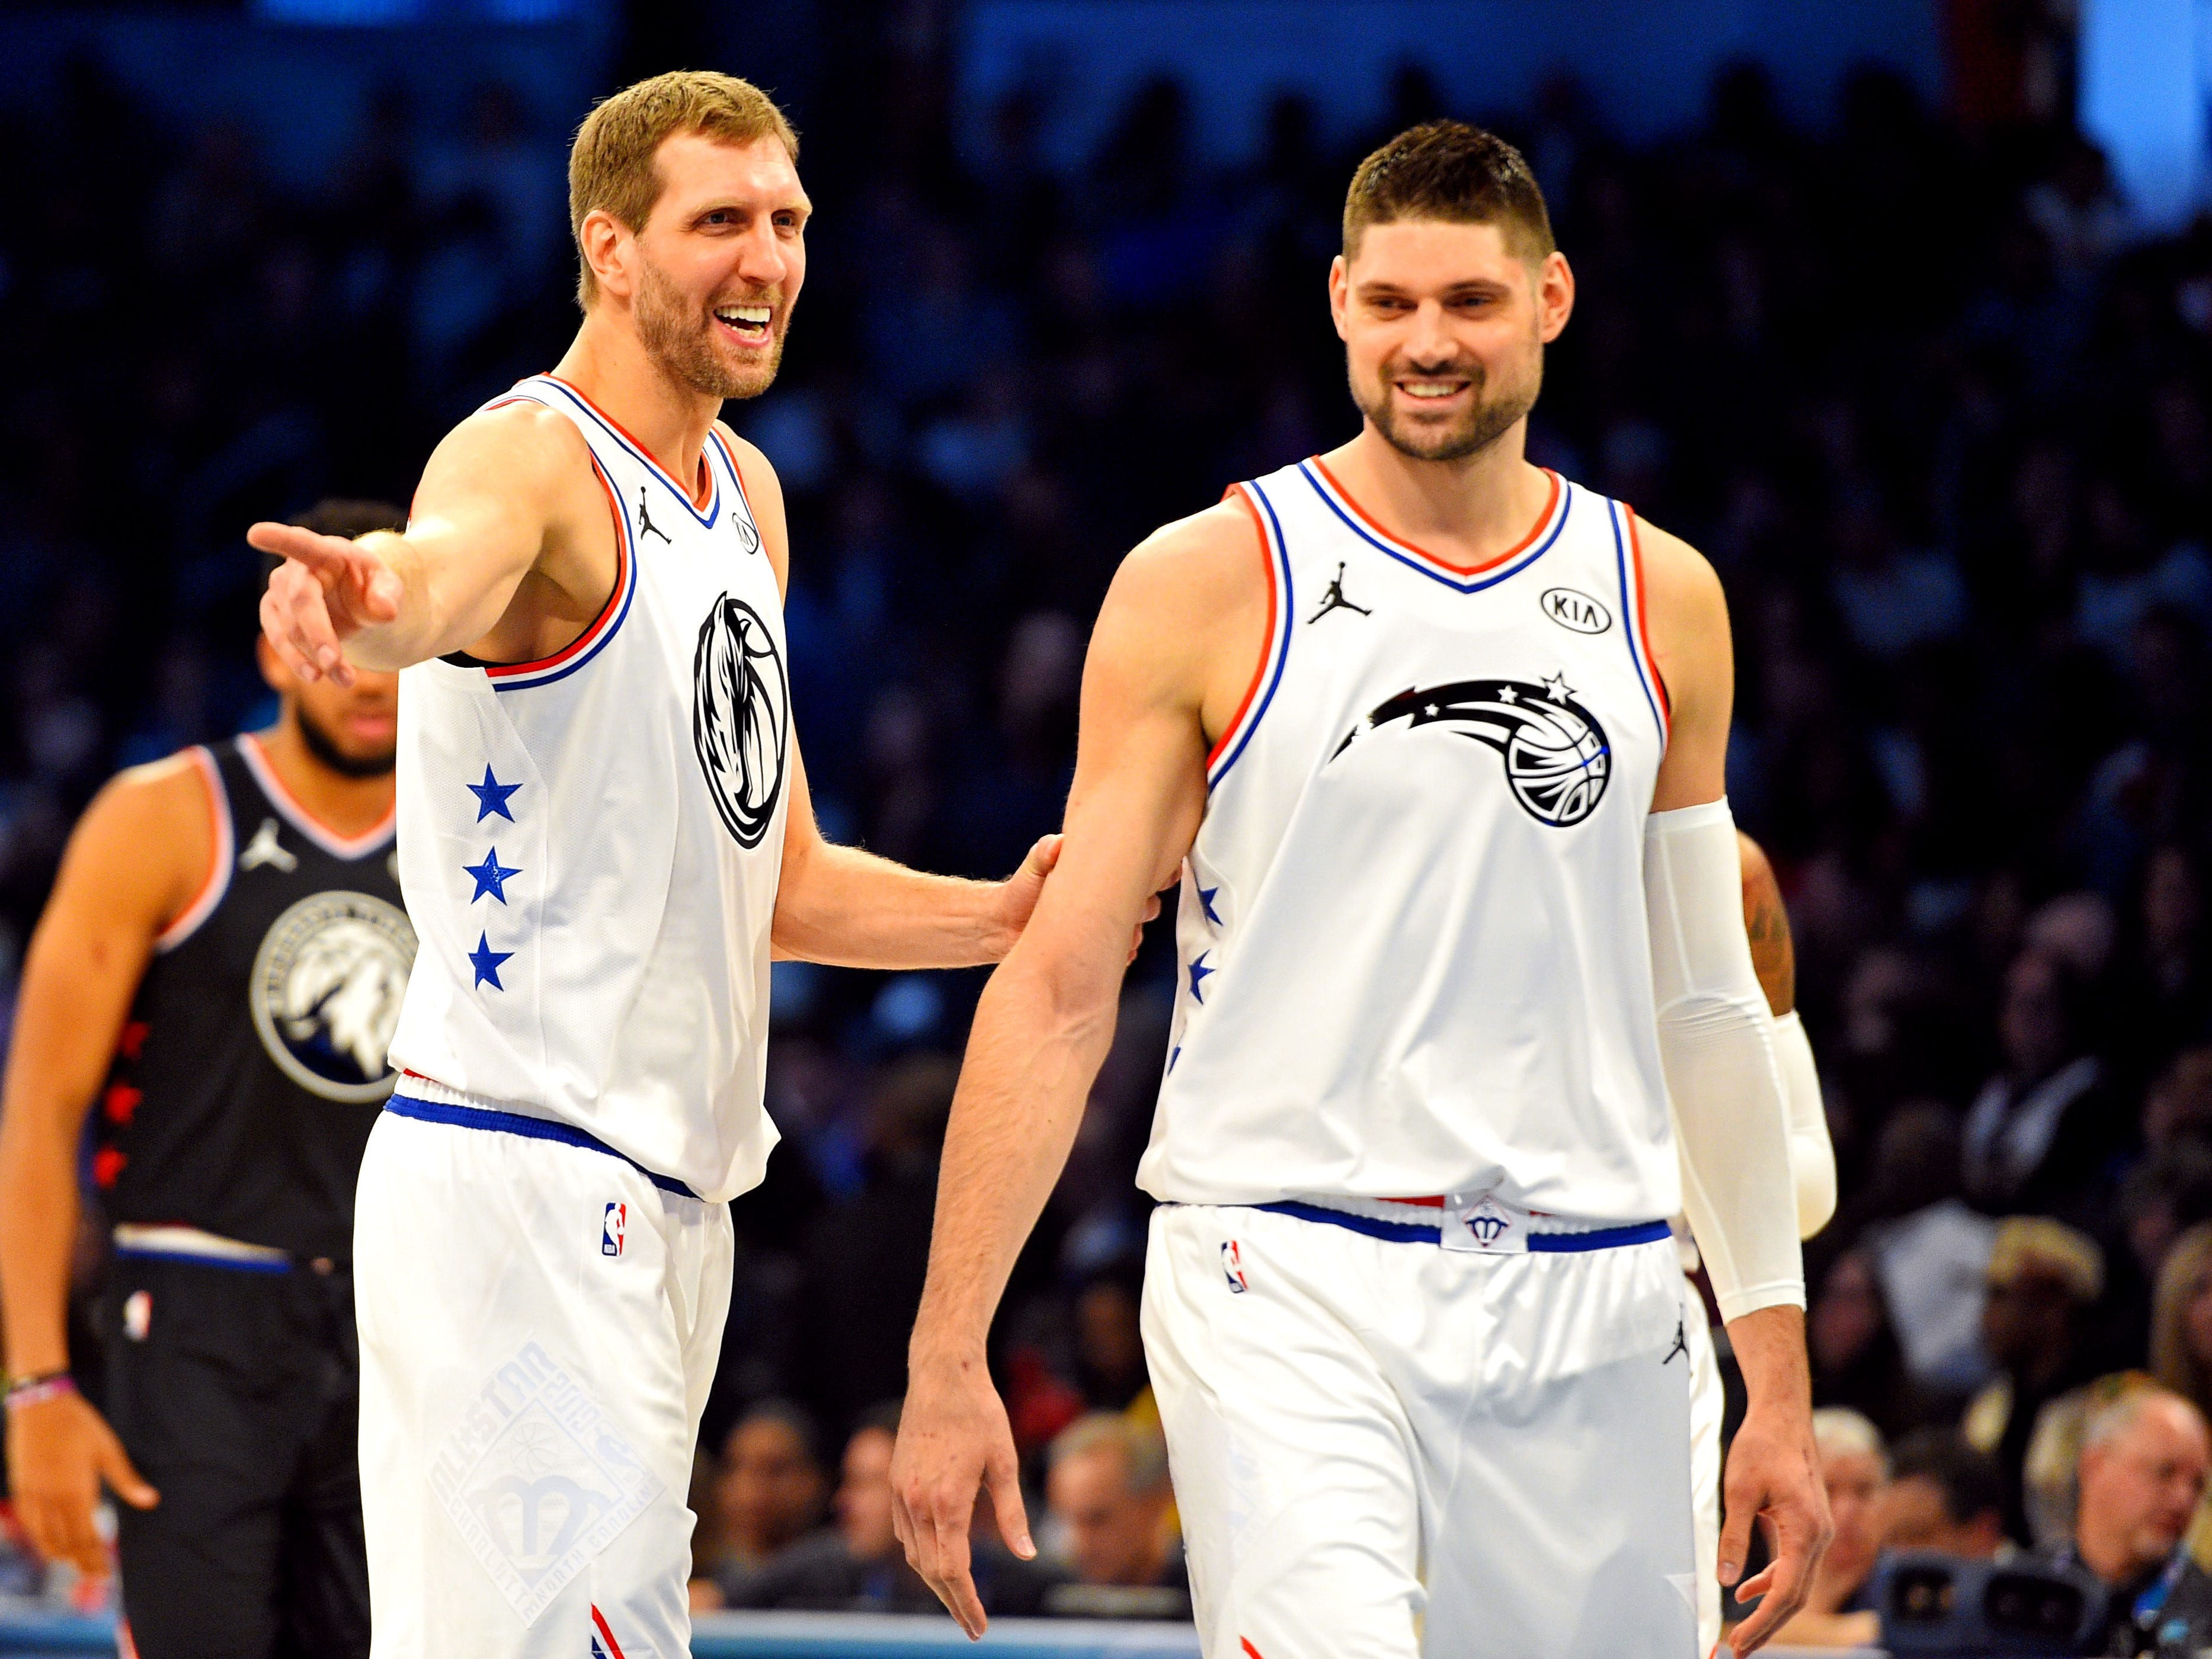 Dirk Nowitzki laughs with Nikola Vucevic during the All-Star Game.